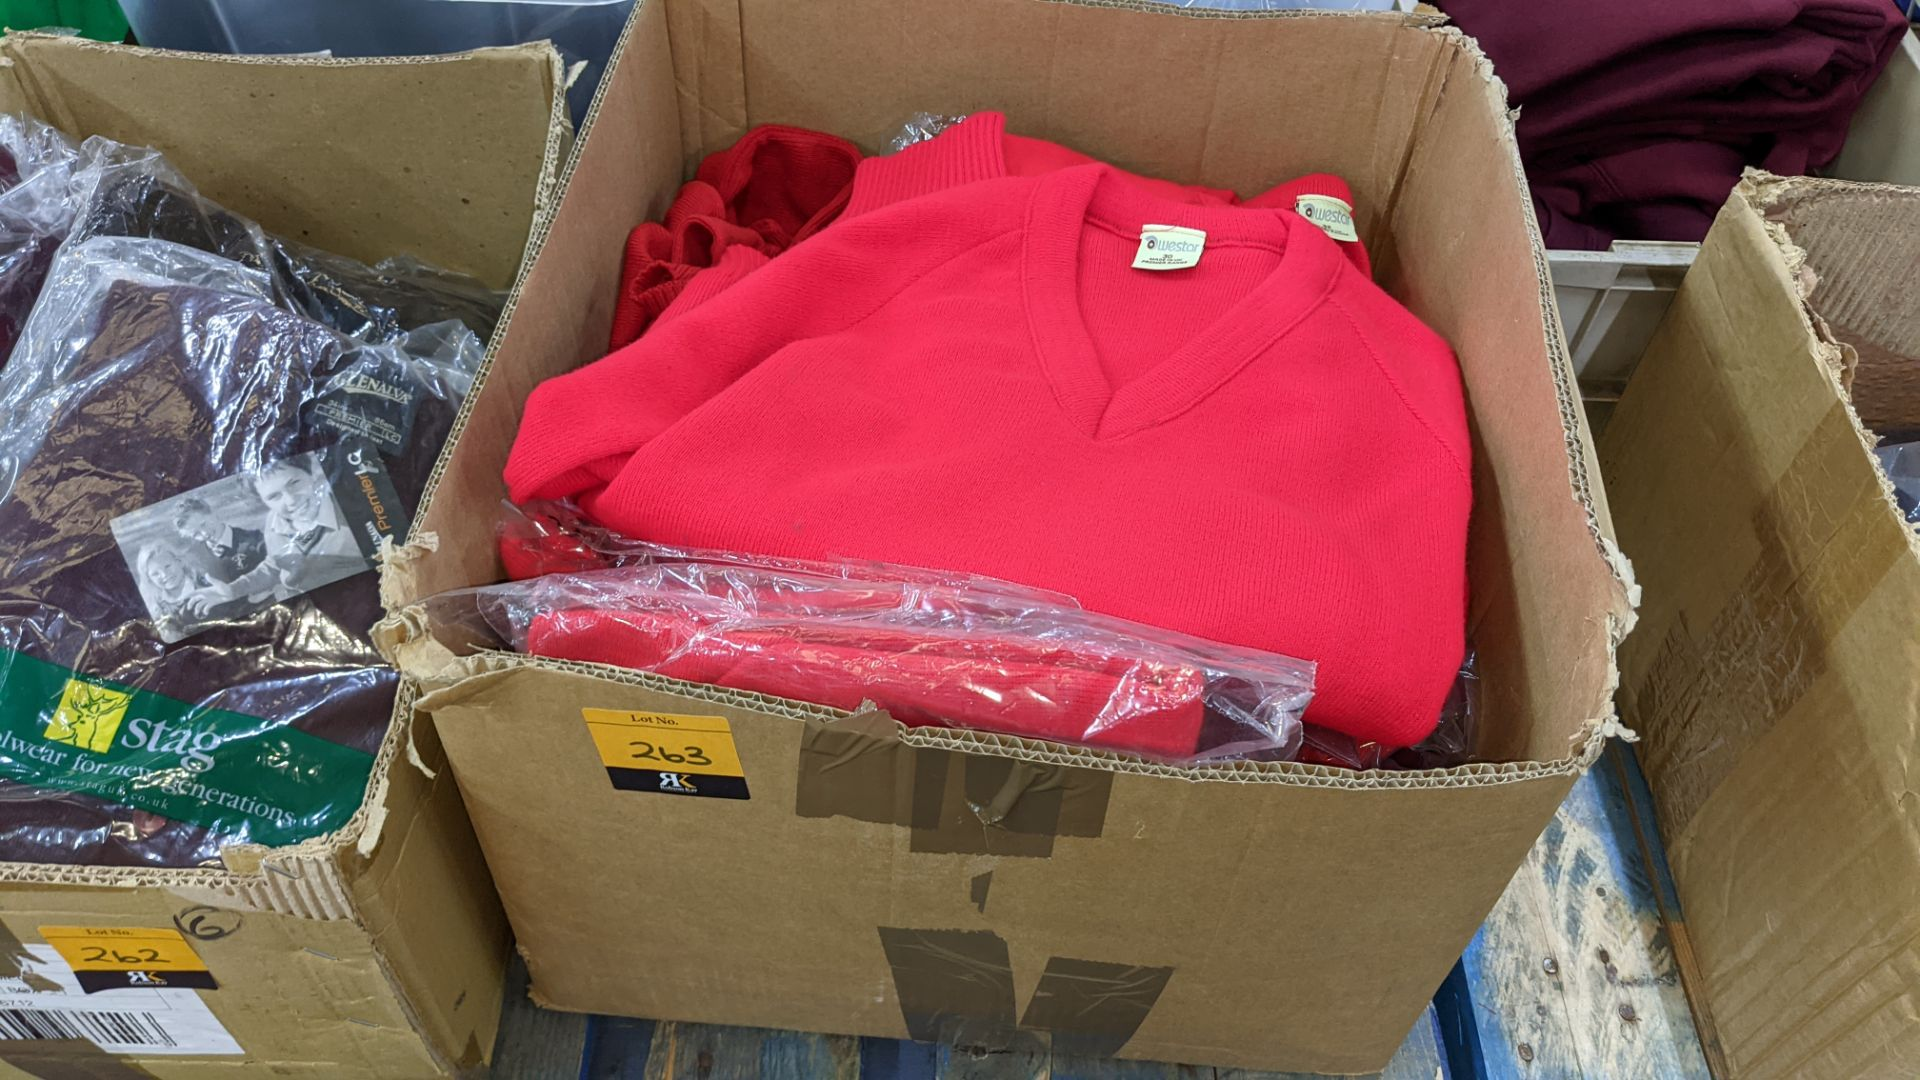 Approx 17 off children's red knitted tops - the contents of 1 box - Image 2 of 4